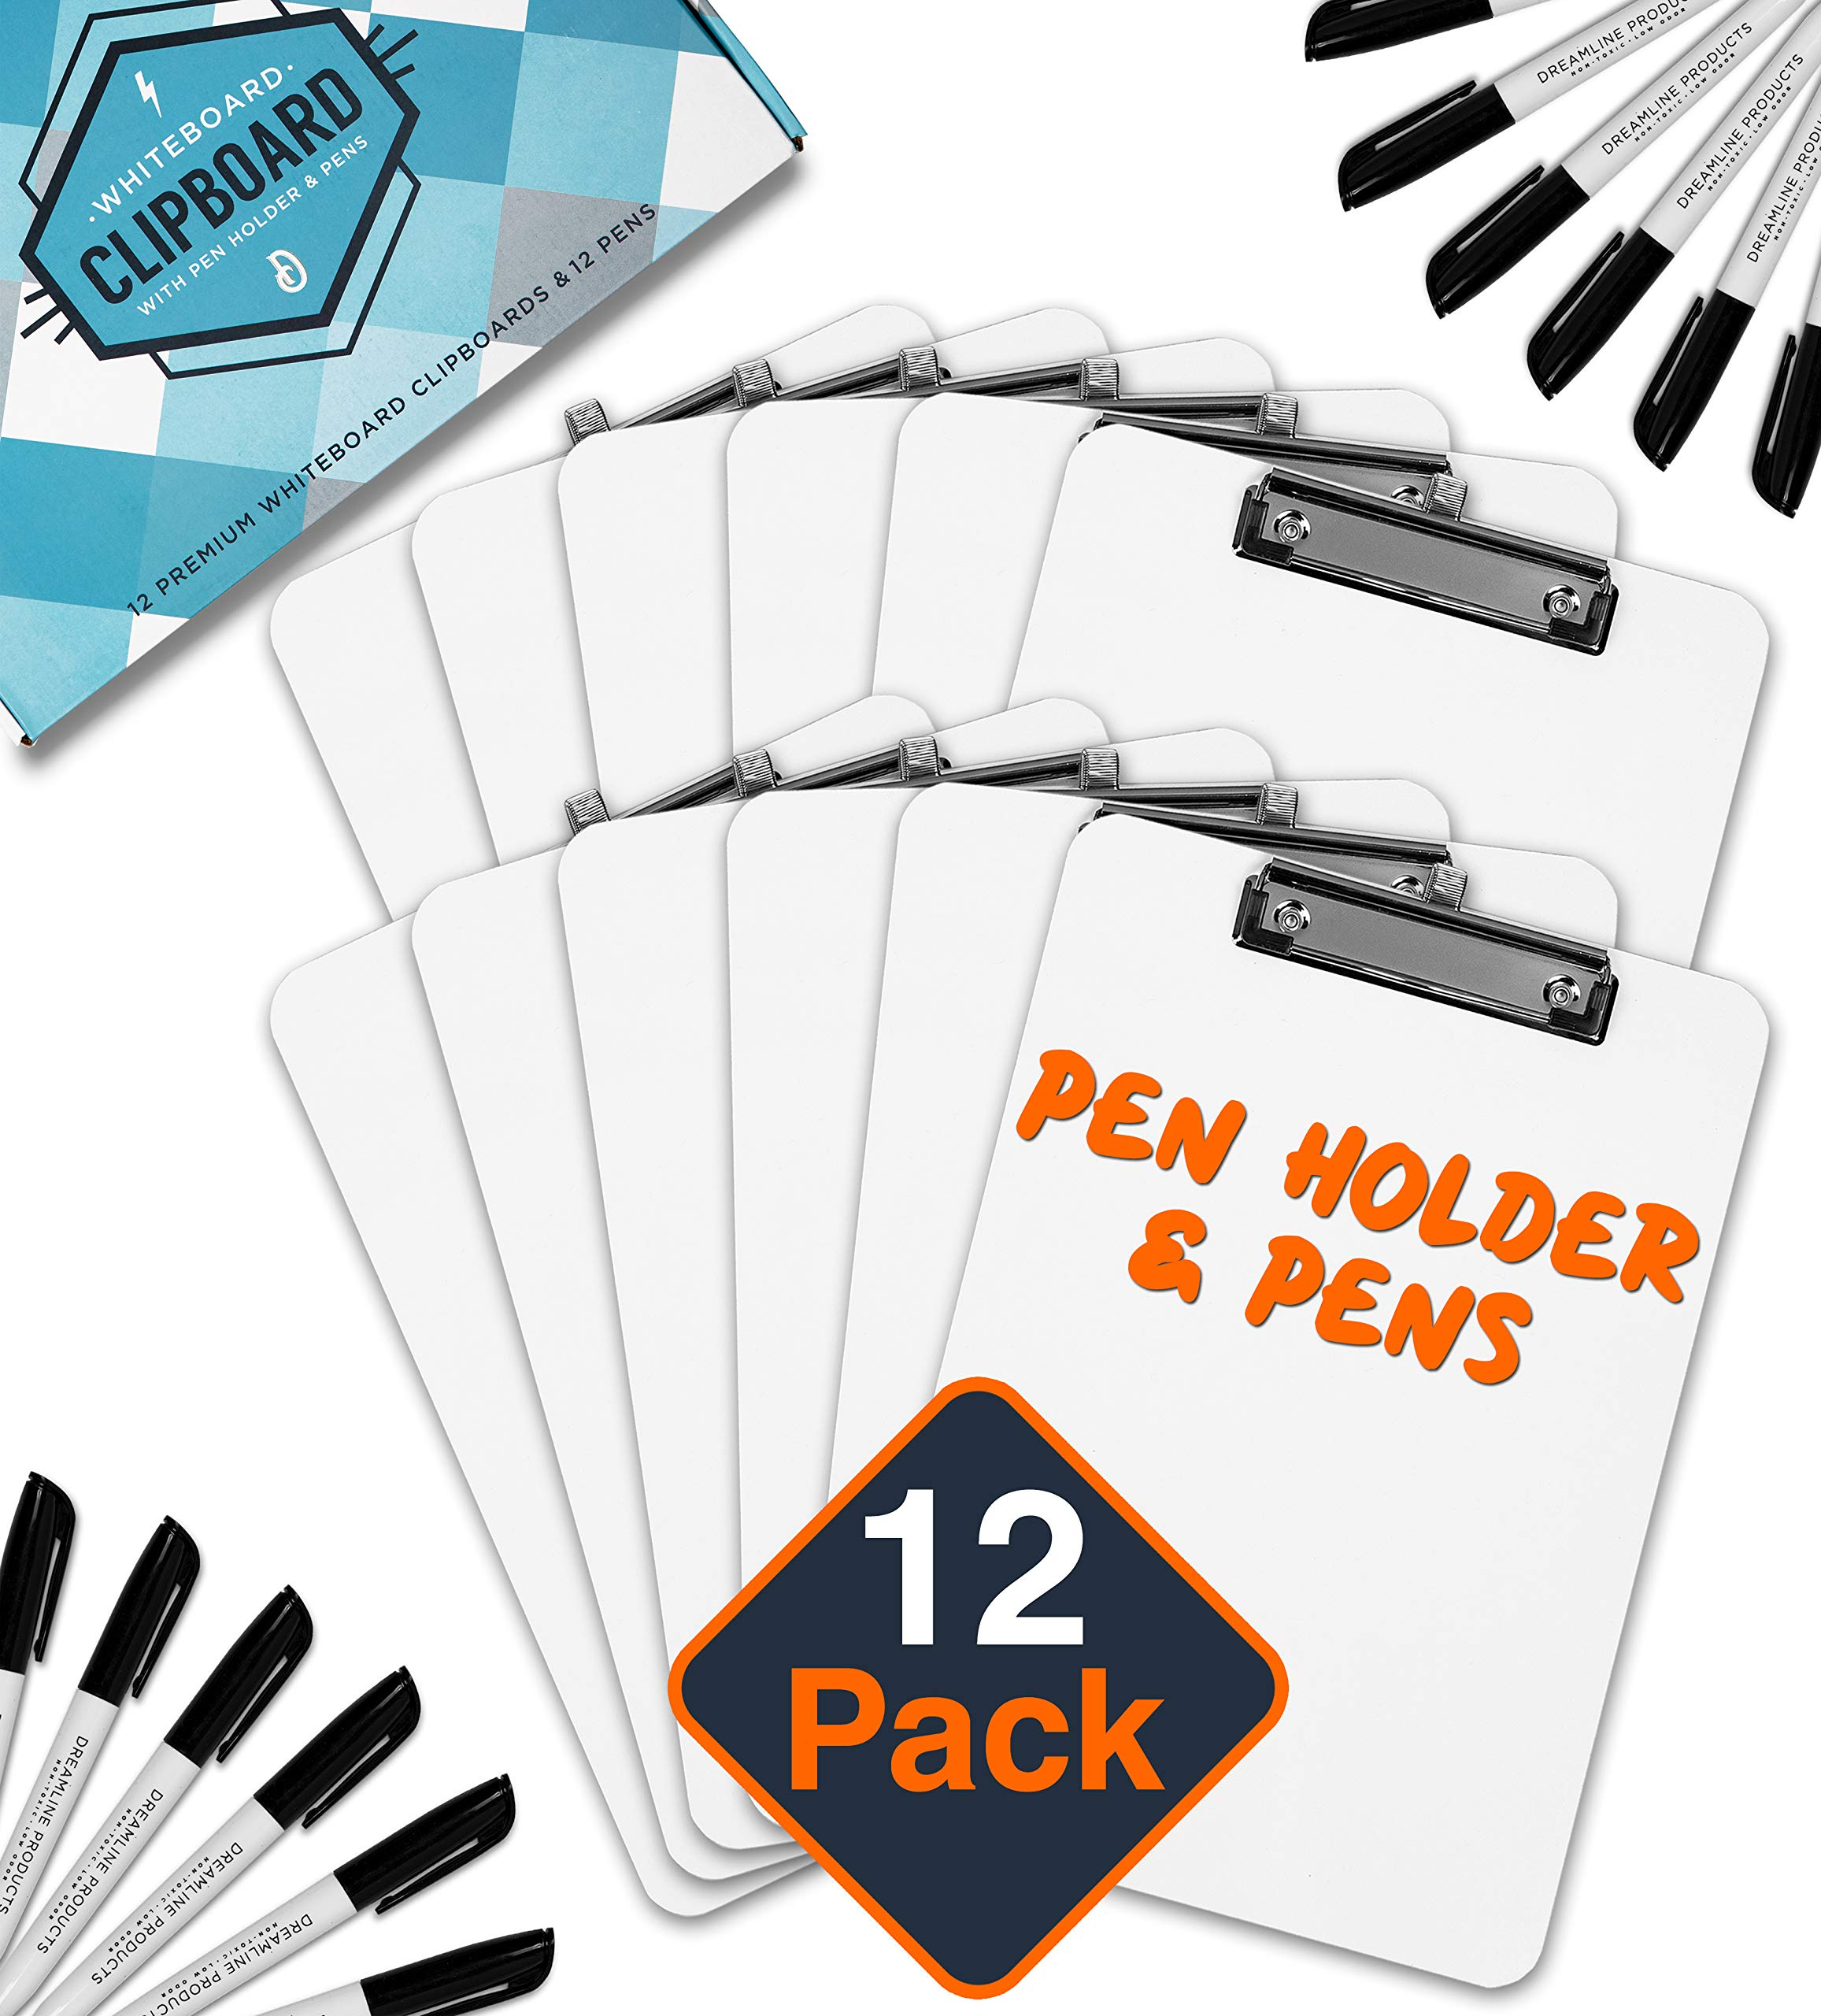 Dry Erase Clipboard + Pen Holder + Markers (12pc) Set of 12 Clip Boards Multi Pack with Whiteboard Pens! 12.5 x 9 Inch, Holds 100 Sheets! Clipboards with Low Profile Clip Board Clips